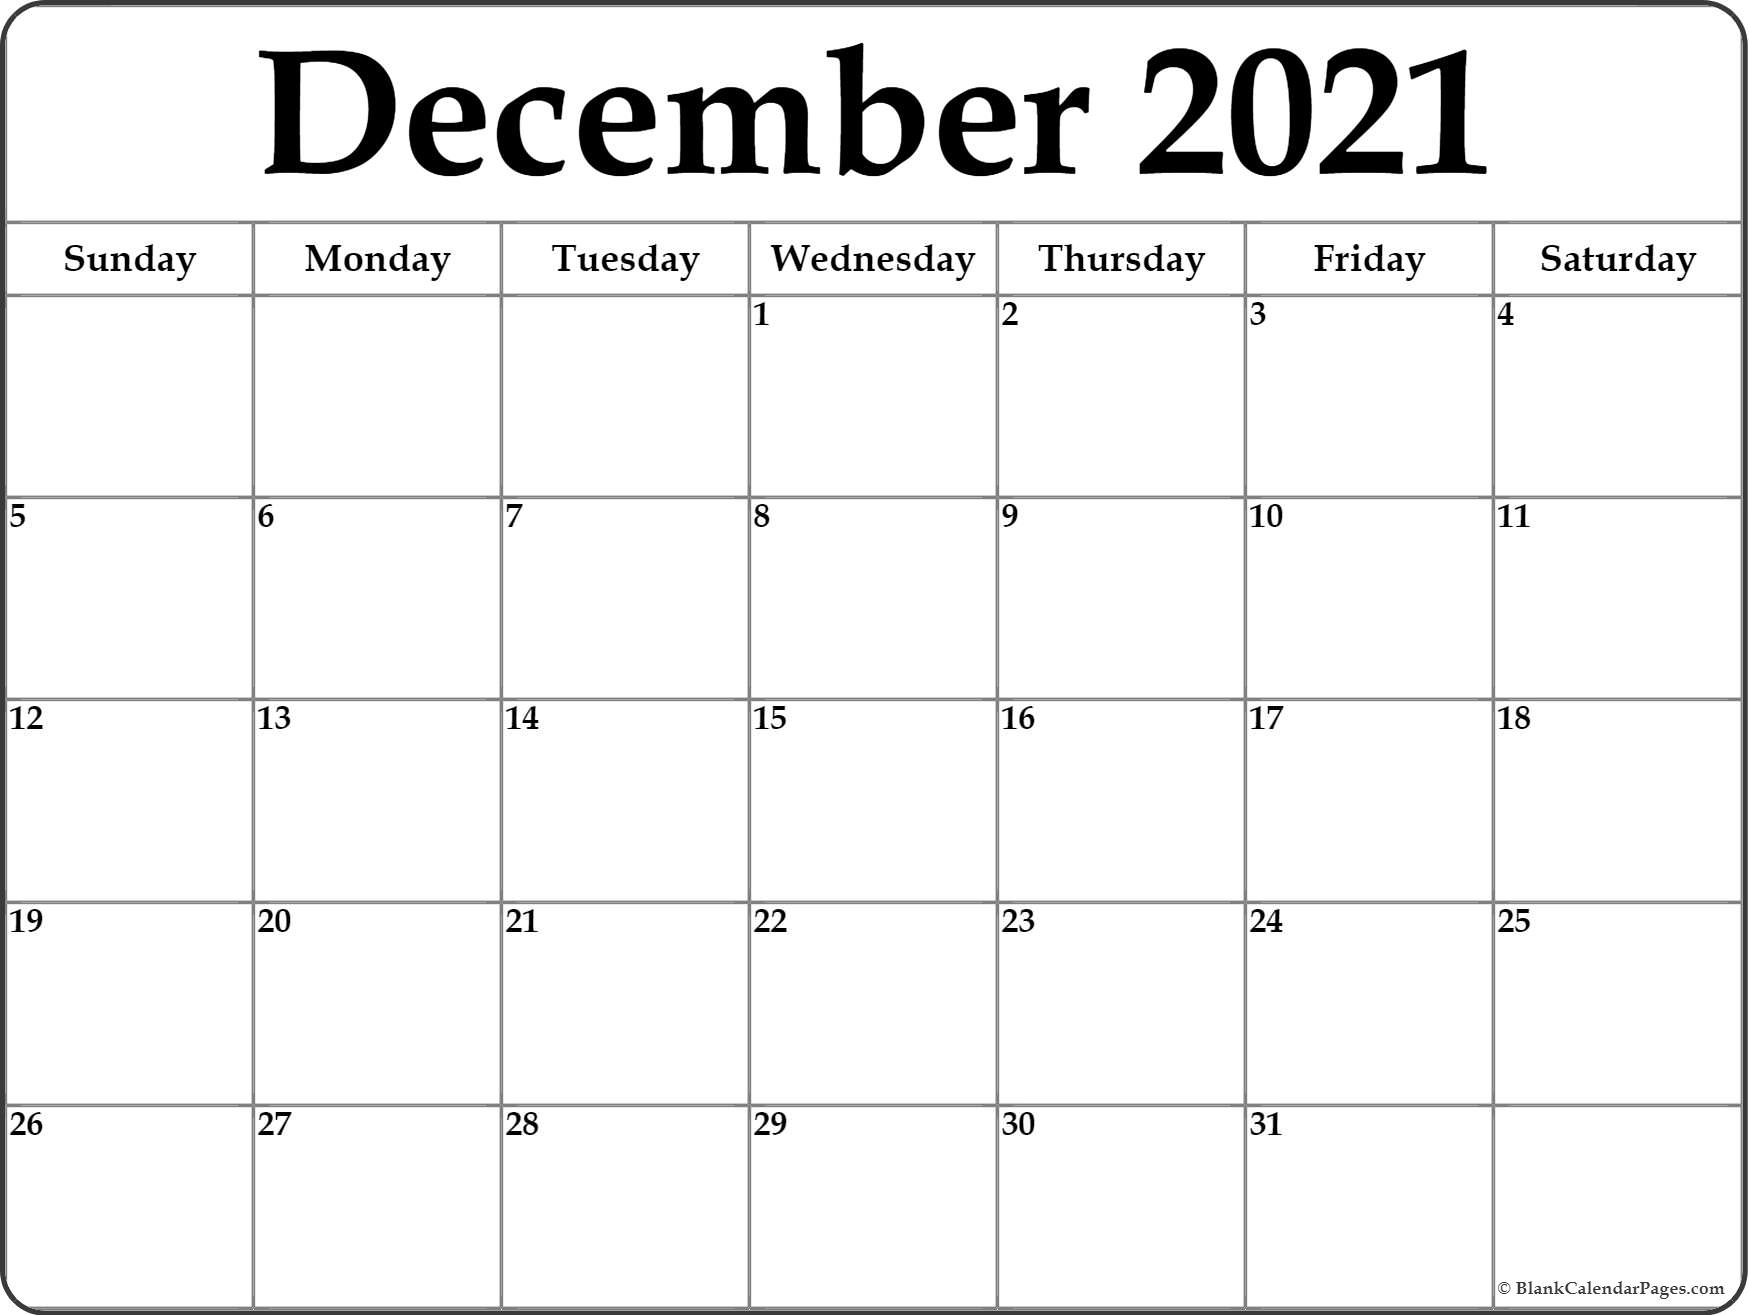 Task Monthly Calendar Templates For September To December 2020 December 2020 blank calendar templates.